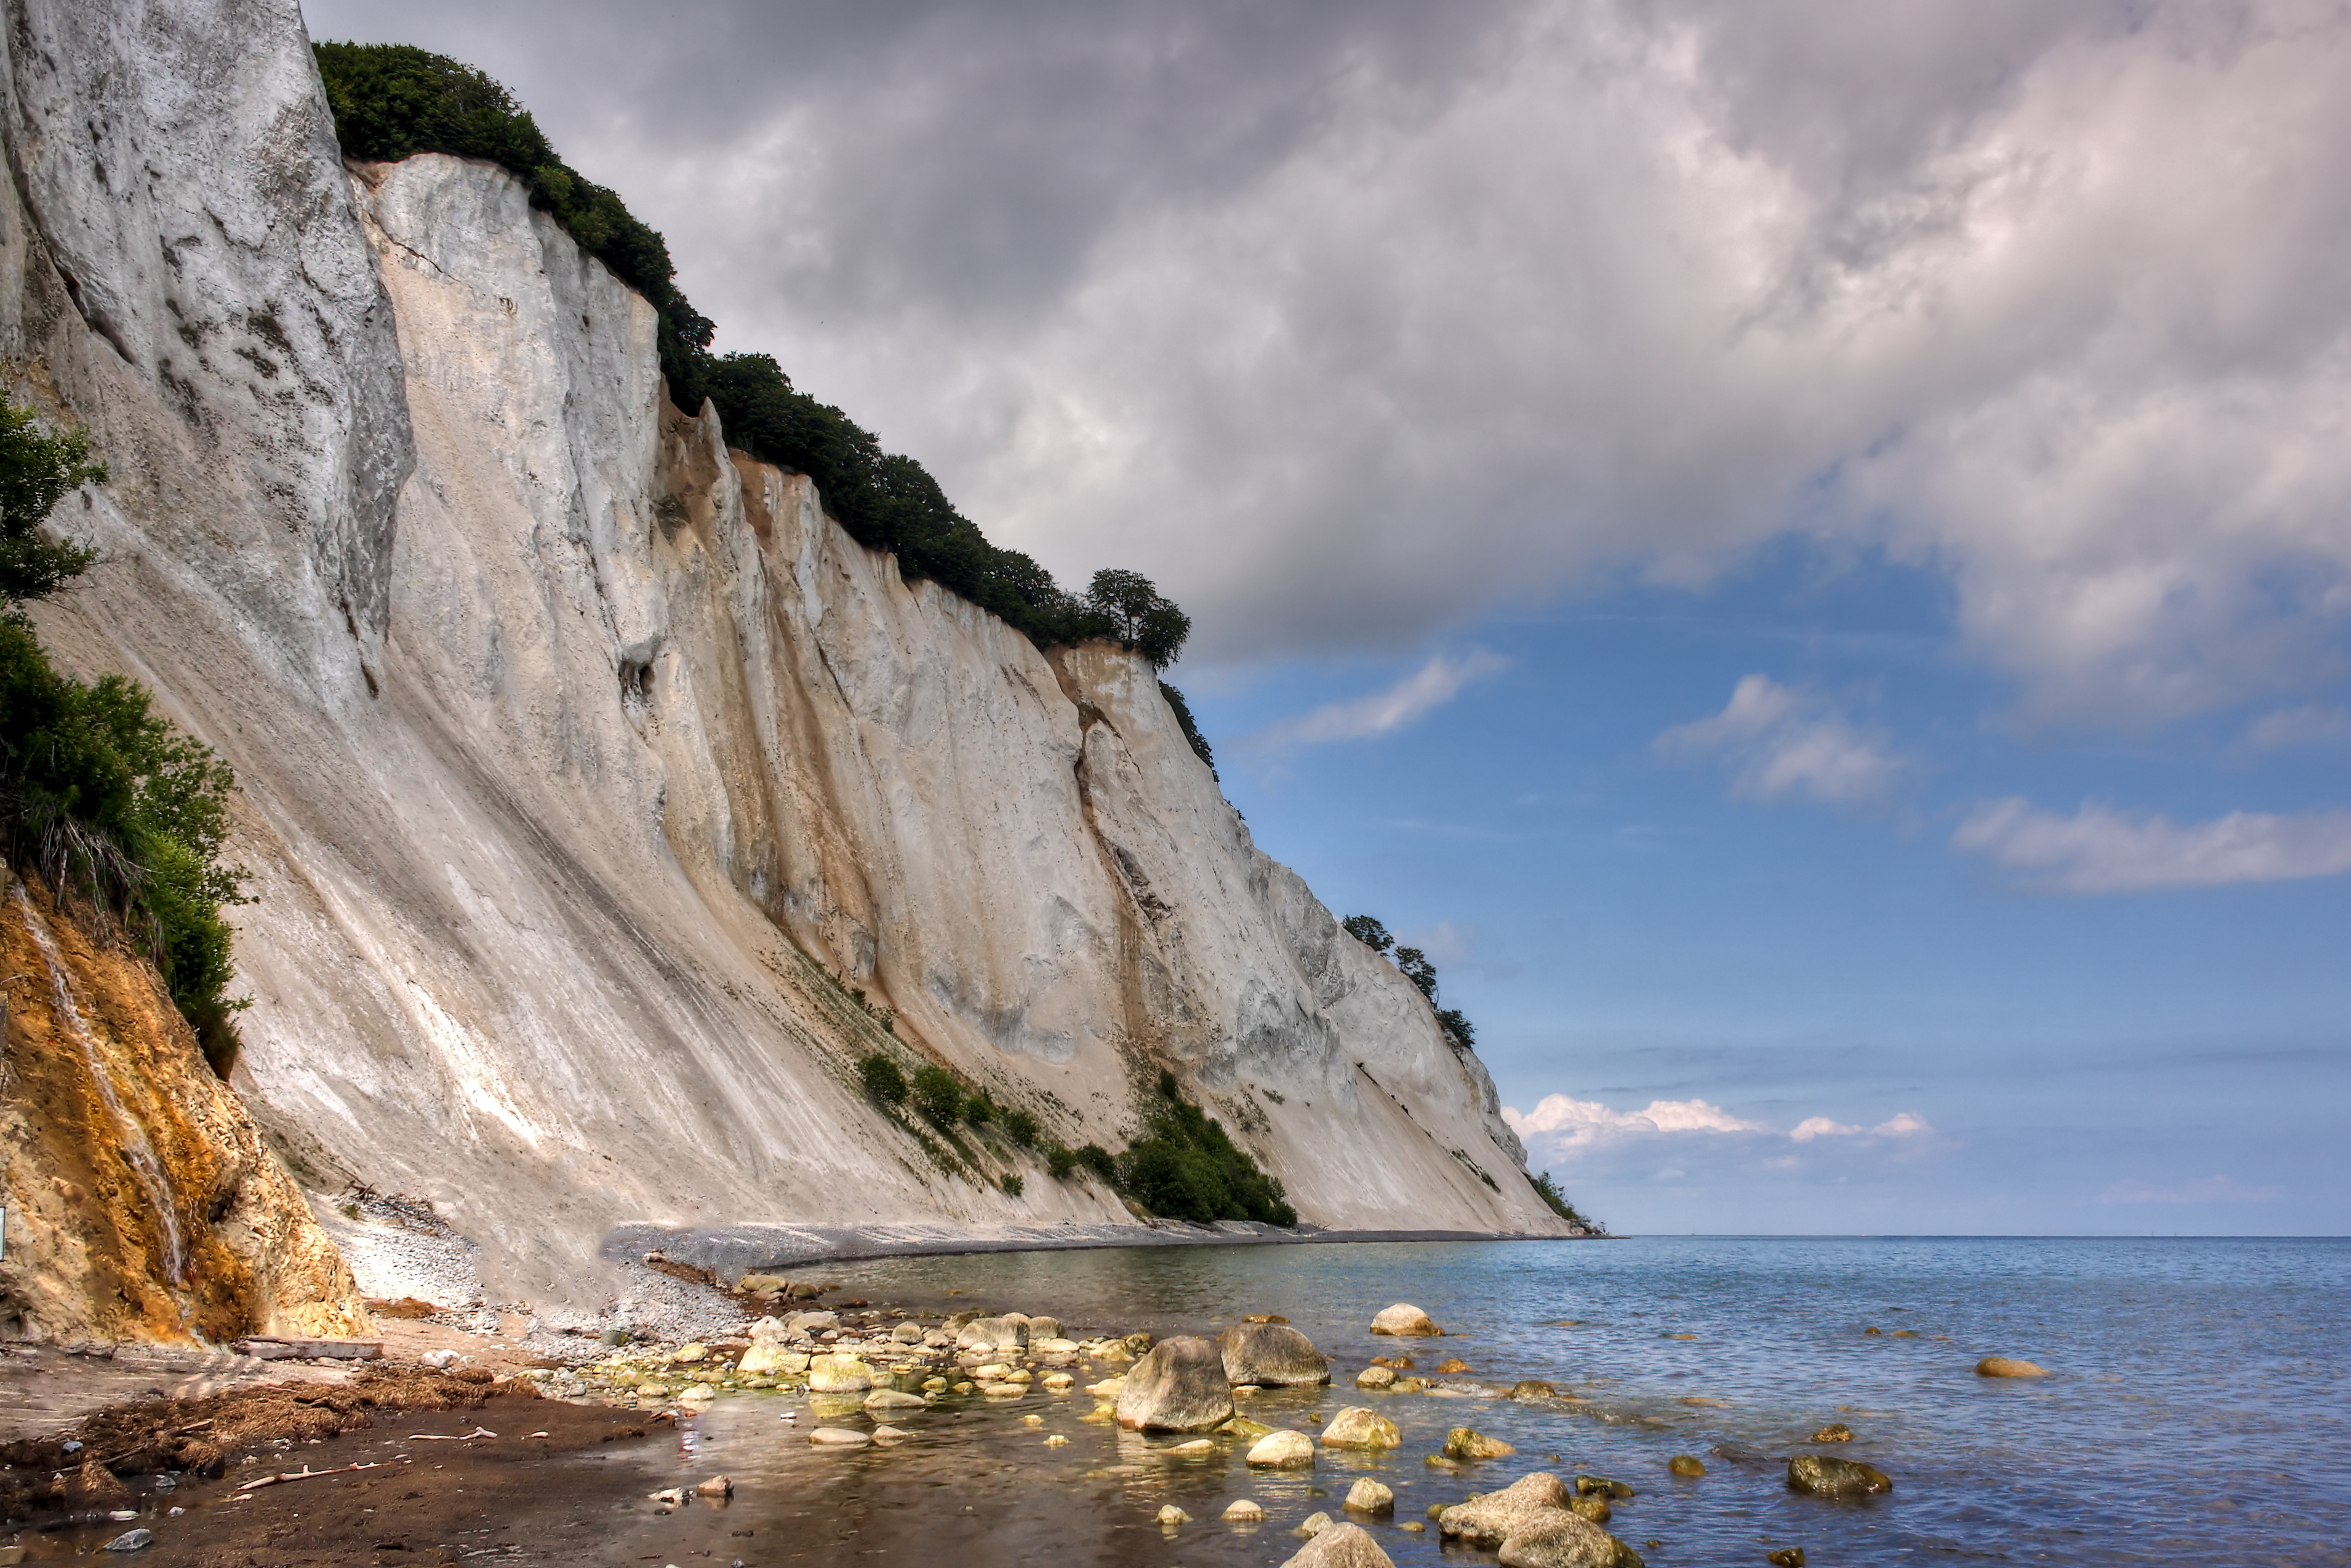 Møns Klint, English: the Cliffs of Møn. The chalk forming the cliffs consists of the remains of shells from millions of microscopic creatures (coccolithophores) which lived on the seabed over 70 million years ago. As a result of huge pressure from glaciers moving west, the terrain was compacted and pushed upwards, forming a number of hills and folds. When the ice melted at the end of the last ice age about 11,000 years ago, the cliffs emerged. They form part of the same deposits as the cliffs of Rügen, Germany, on the other side of the Baltic. Today, it is possible to find fossils of various types of shellfish as the sea continues to erode the chalk. Erosion also caused one of the highest points on the cliffs, the Sommerspir, to fall into the sea in 1998, and in January 2007, there was an even larger landslide around the Store Taler, in the northern part of the cliffs, creating a 300-m long peninsula of chalk and fallen trees stretching out into the sea below. source: en.wikipedia.org/wiki/M%C3%B8ns_Klint  All Rights Reserved © René Eriksen. Please do not use my pictures outside the Flickr, without my permission.